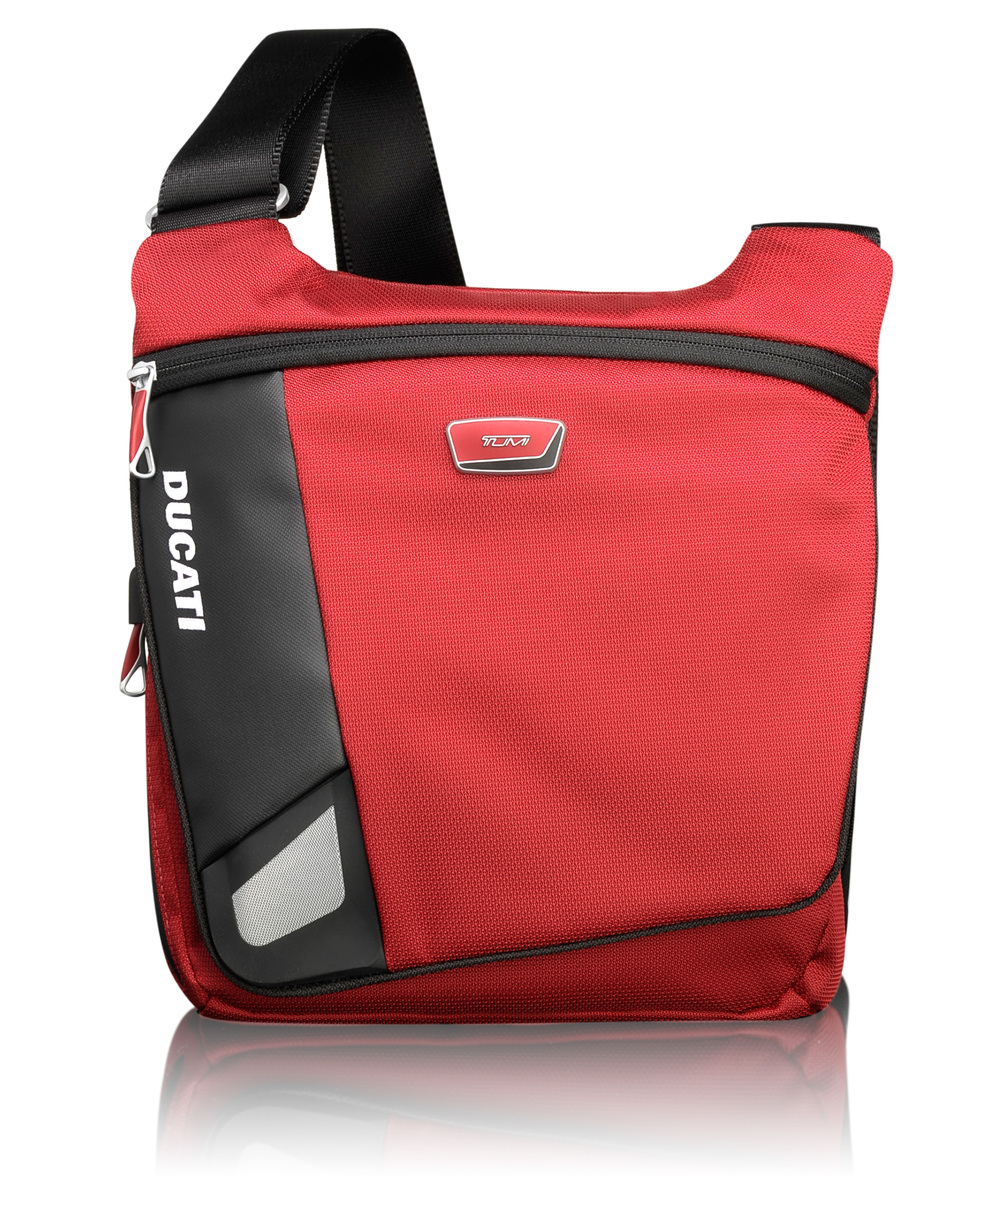 65103 Race Ducati Deso Snall Flap Crossbody .jpeg